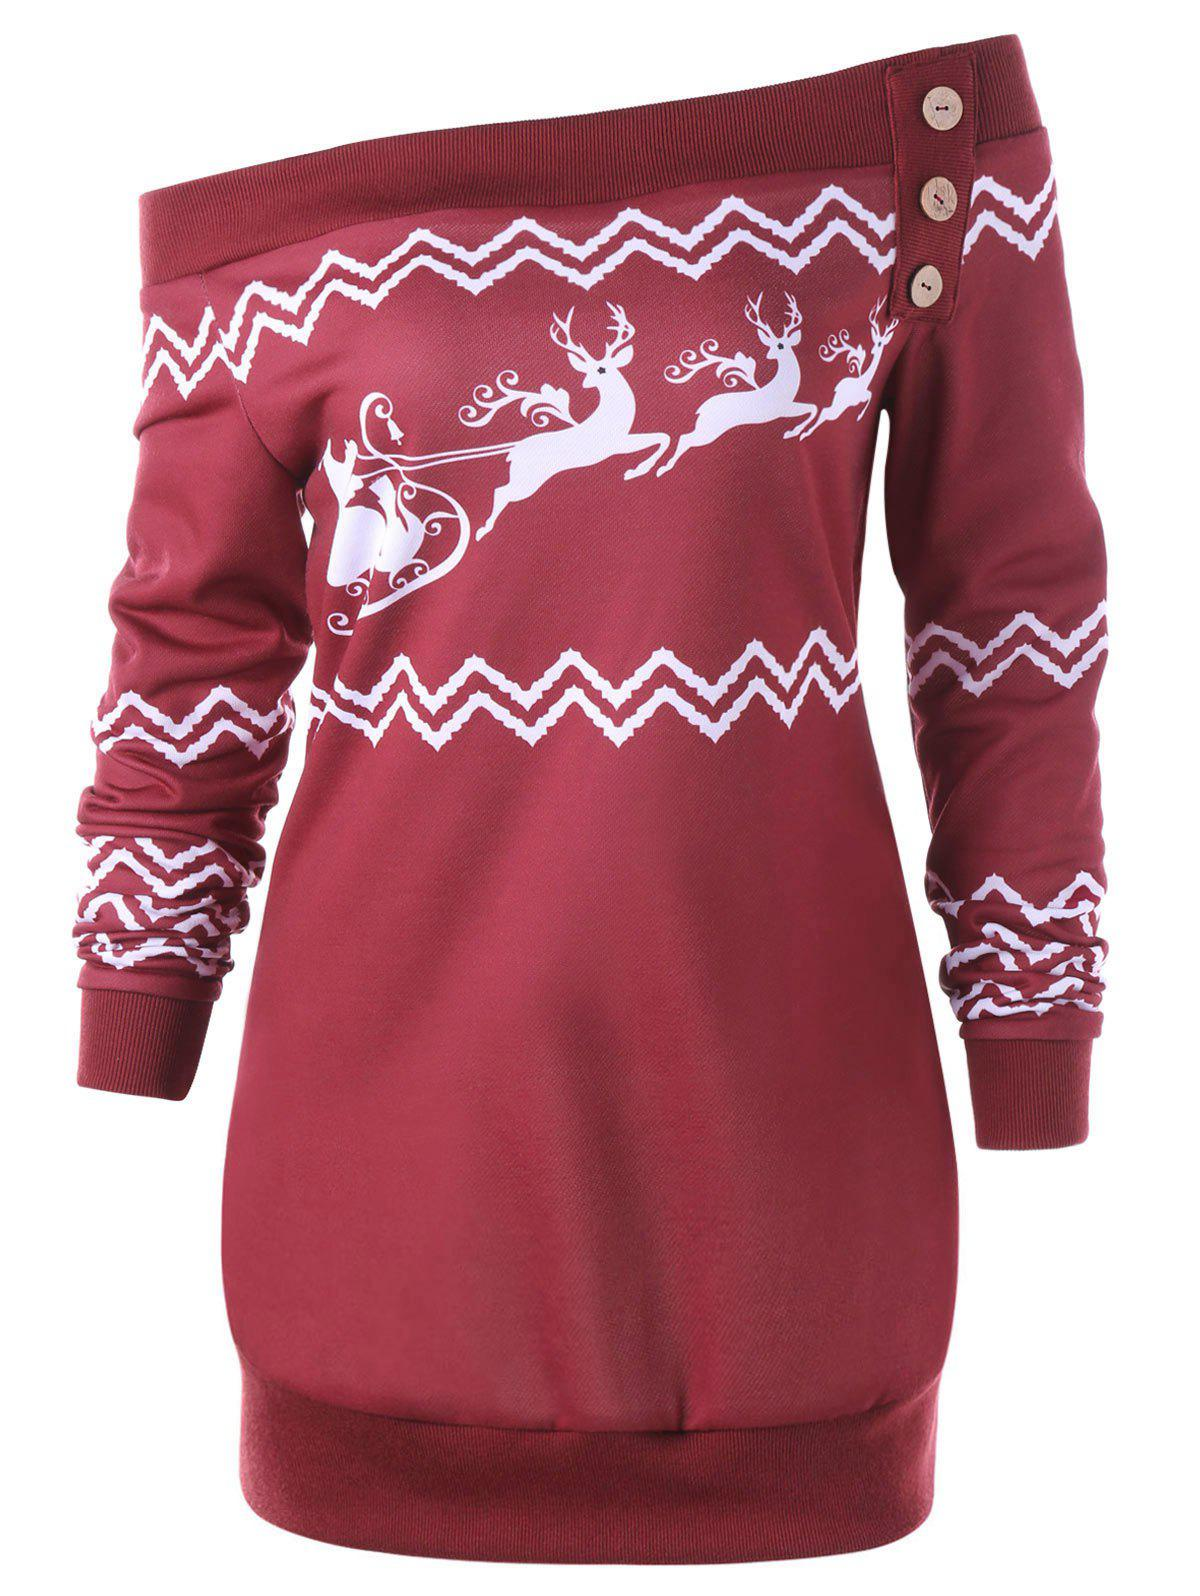 Plus Size Pullover Zigzag Deer Skew Neck Christmas Sweatshirt plus size skew neck floral sweatshirt